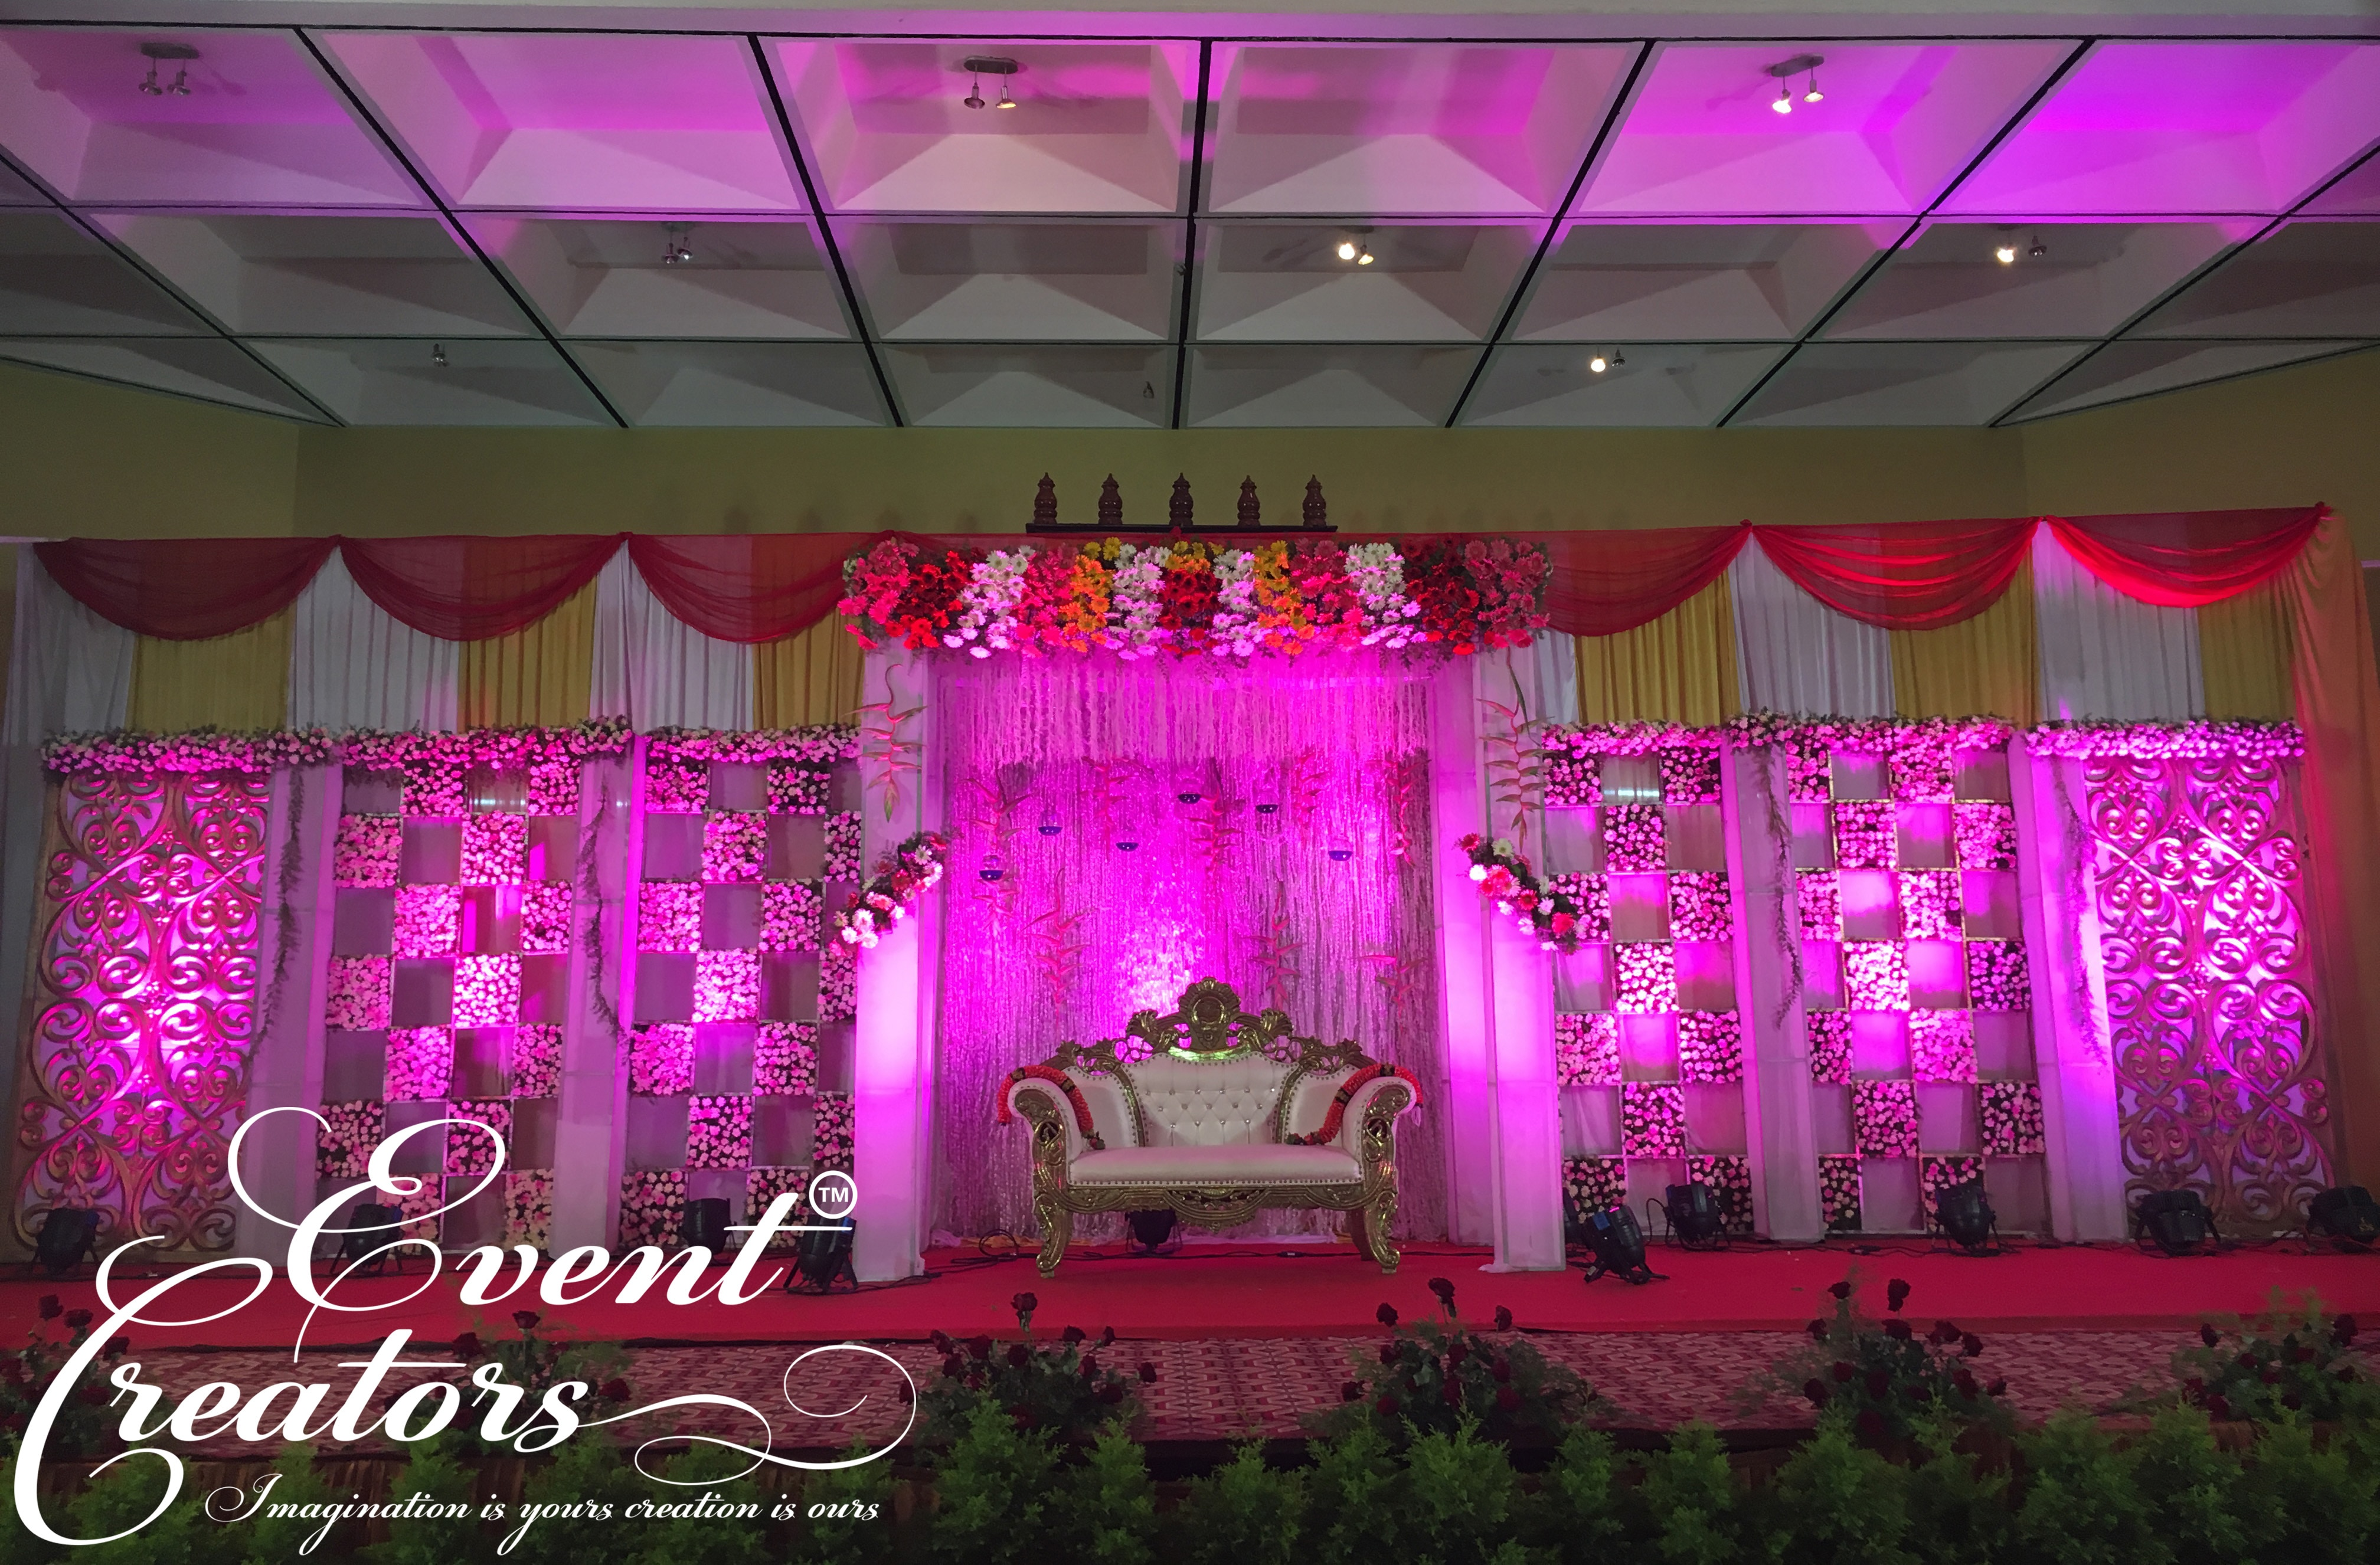 Event Creators...Back to Social....!!! #Busy_Schedule. #Continuous_Events. #New_Stages. #Busy_Workers. & Now, Its Show time. A gorgeous theme filled with flowers & colorful lighting's gave the feel of heaven(words from our clients)...